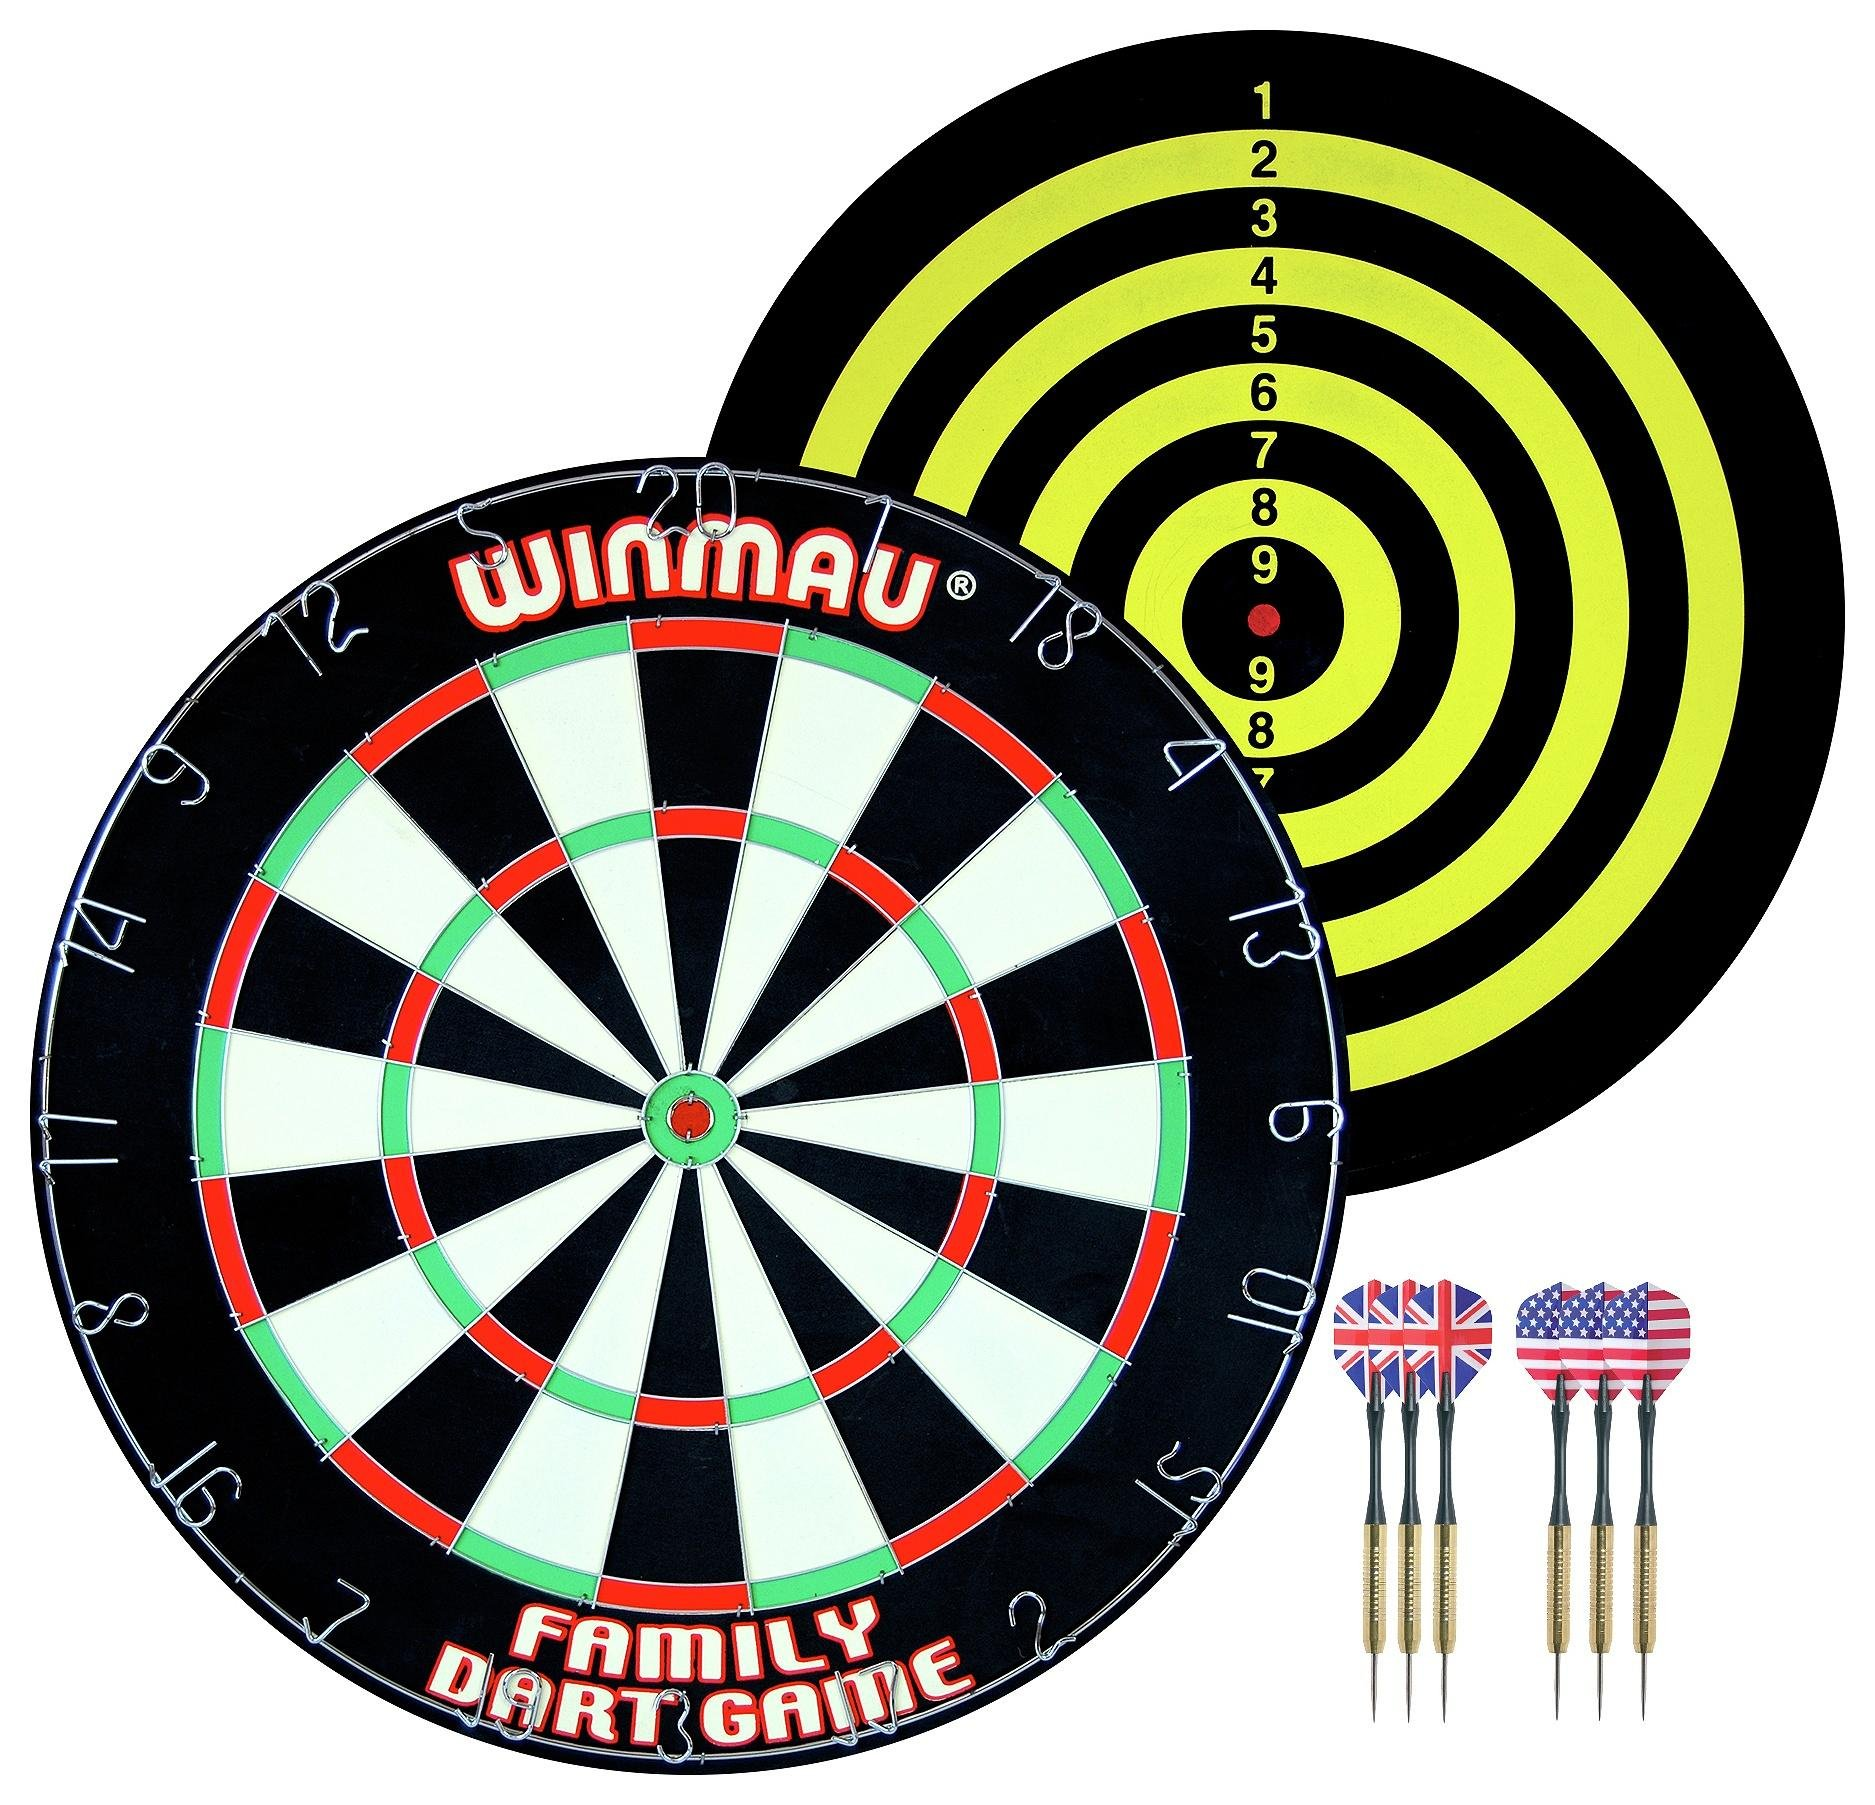 Winmau - Family Dart Game from Winmau